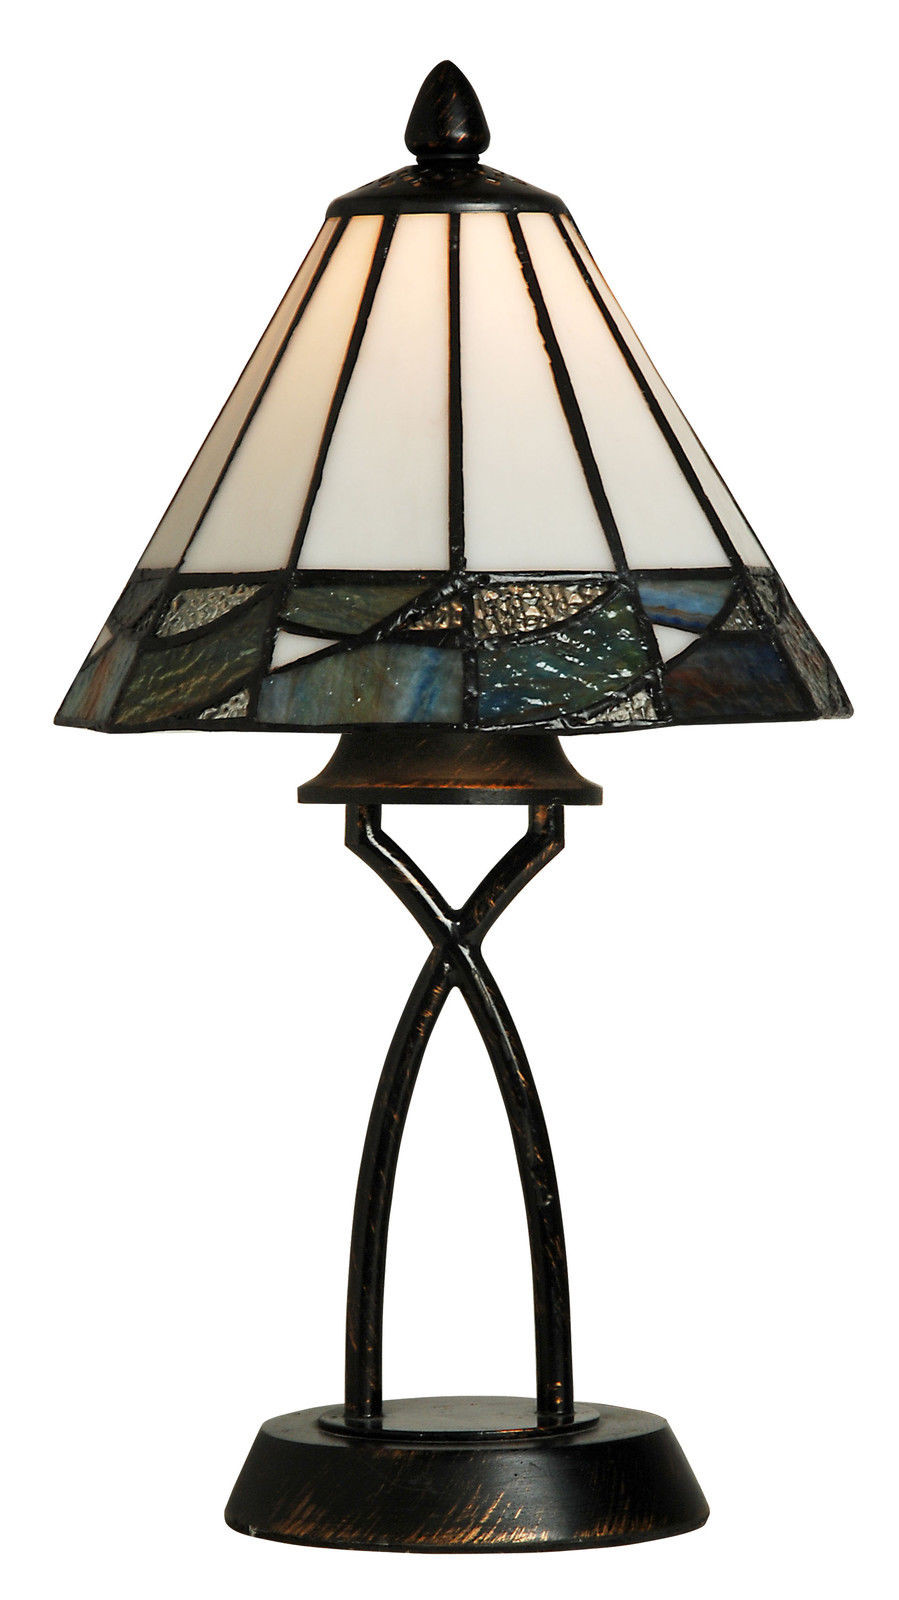 Best ideas about Unique Desk Lamps . Save or Pin TIFFANY STYLE UNIQUE STAINED GLASS DESK TABLE LAMP 7 87 Now.